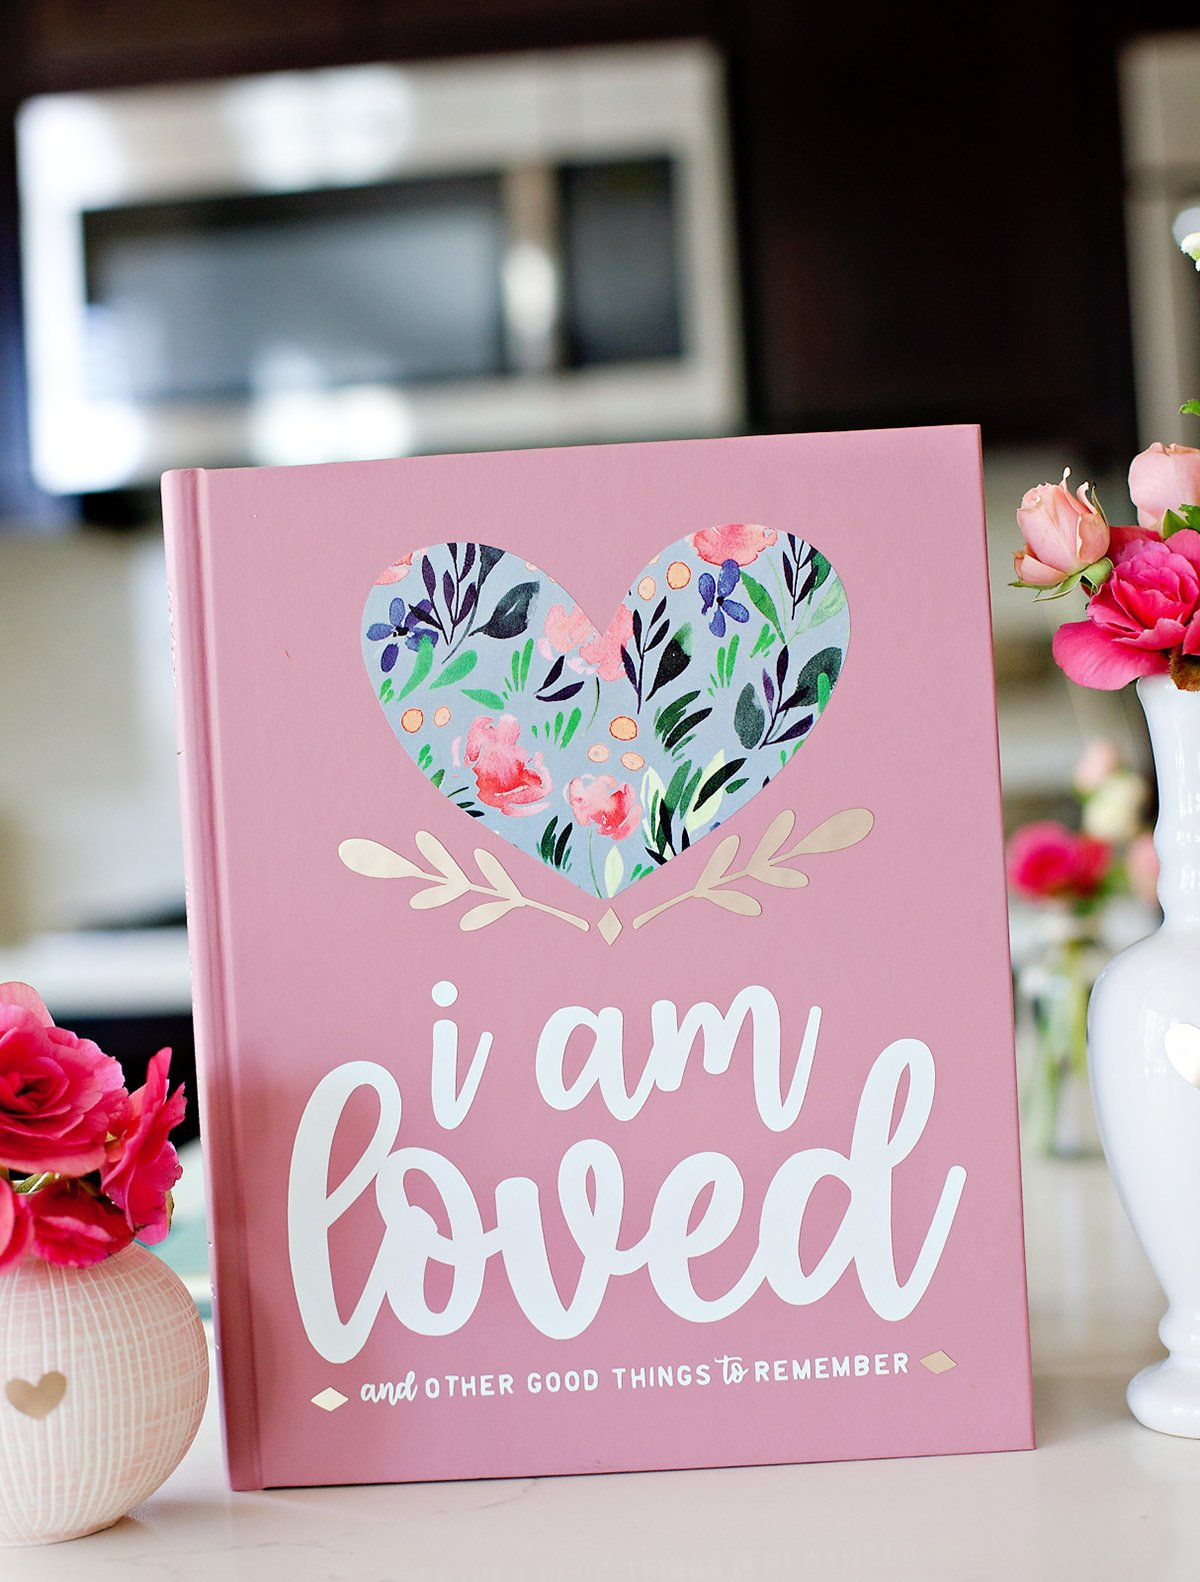 I am loved journal - free printable